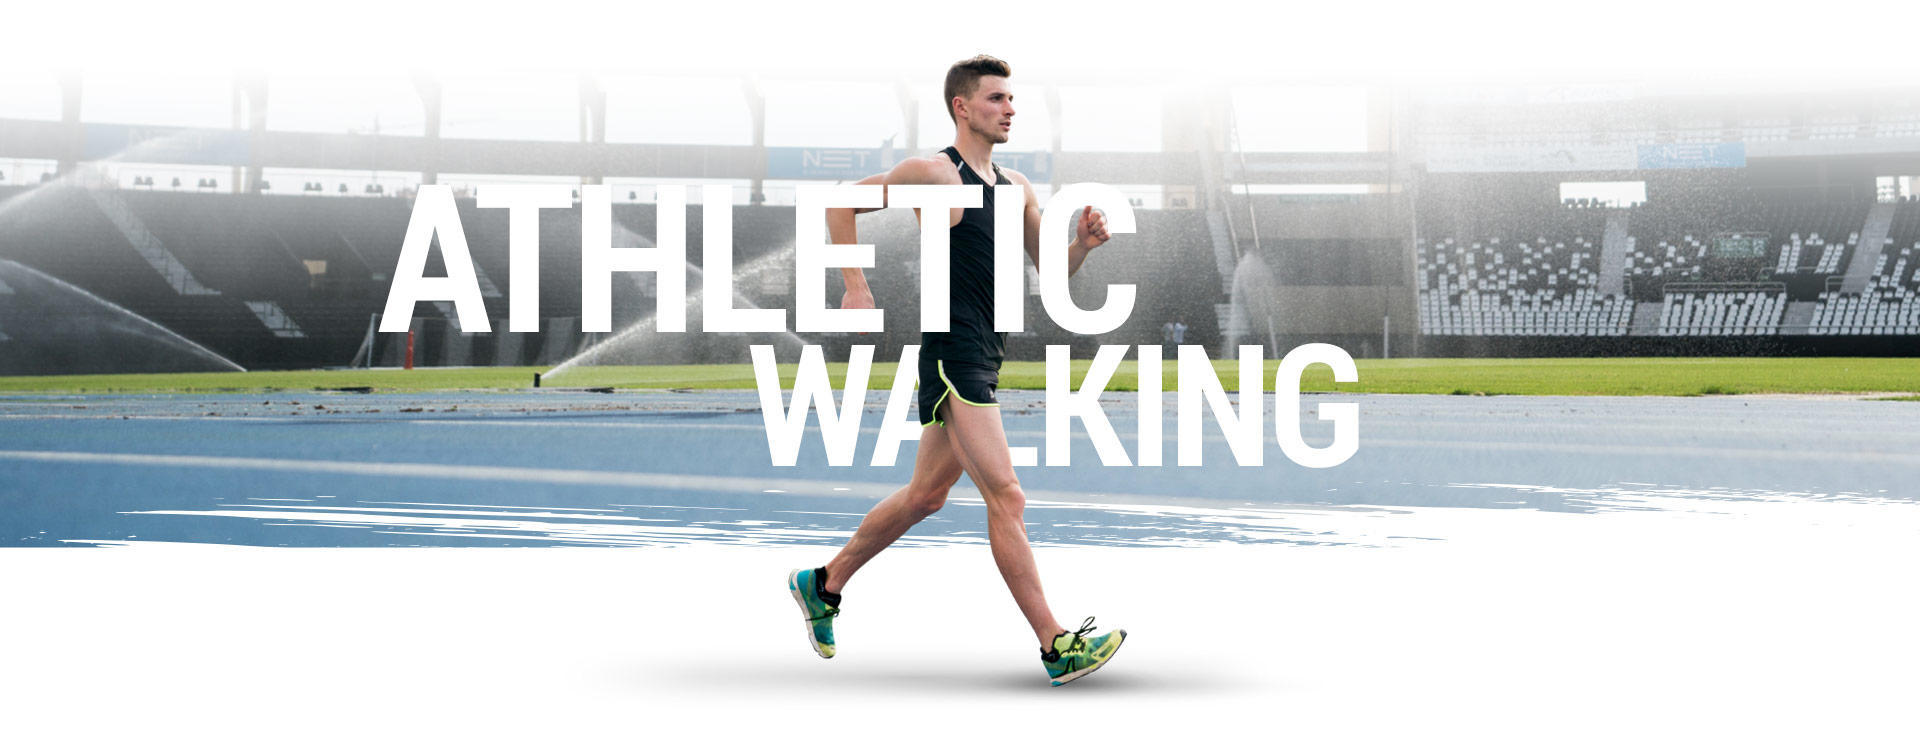 cover-athletic-walking-newfeel